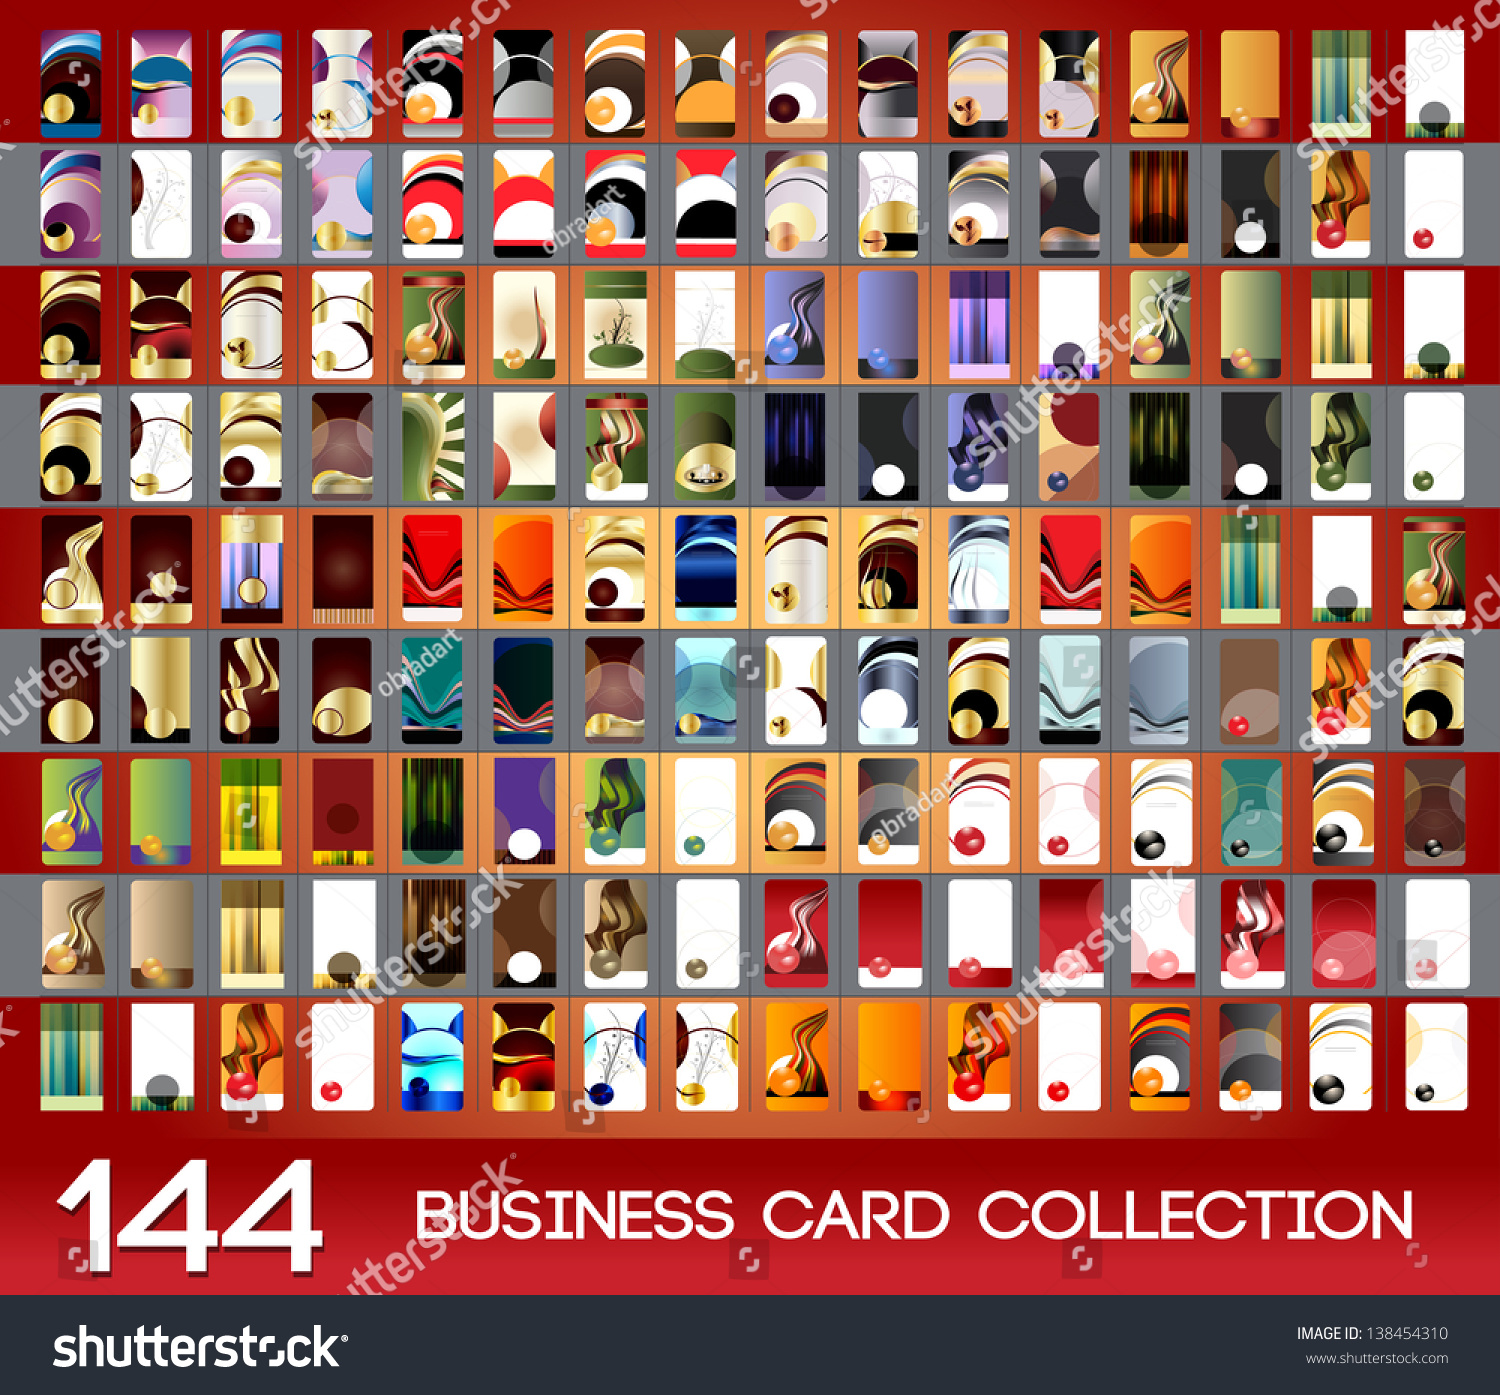 Vertical Business Cards Collection Stock Vector ...